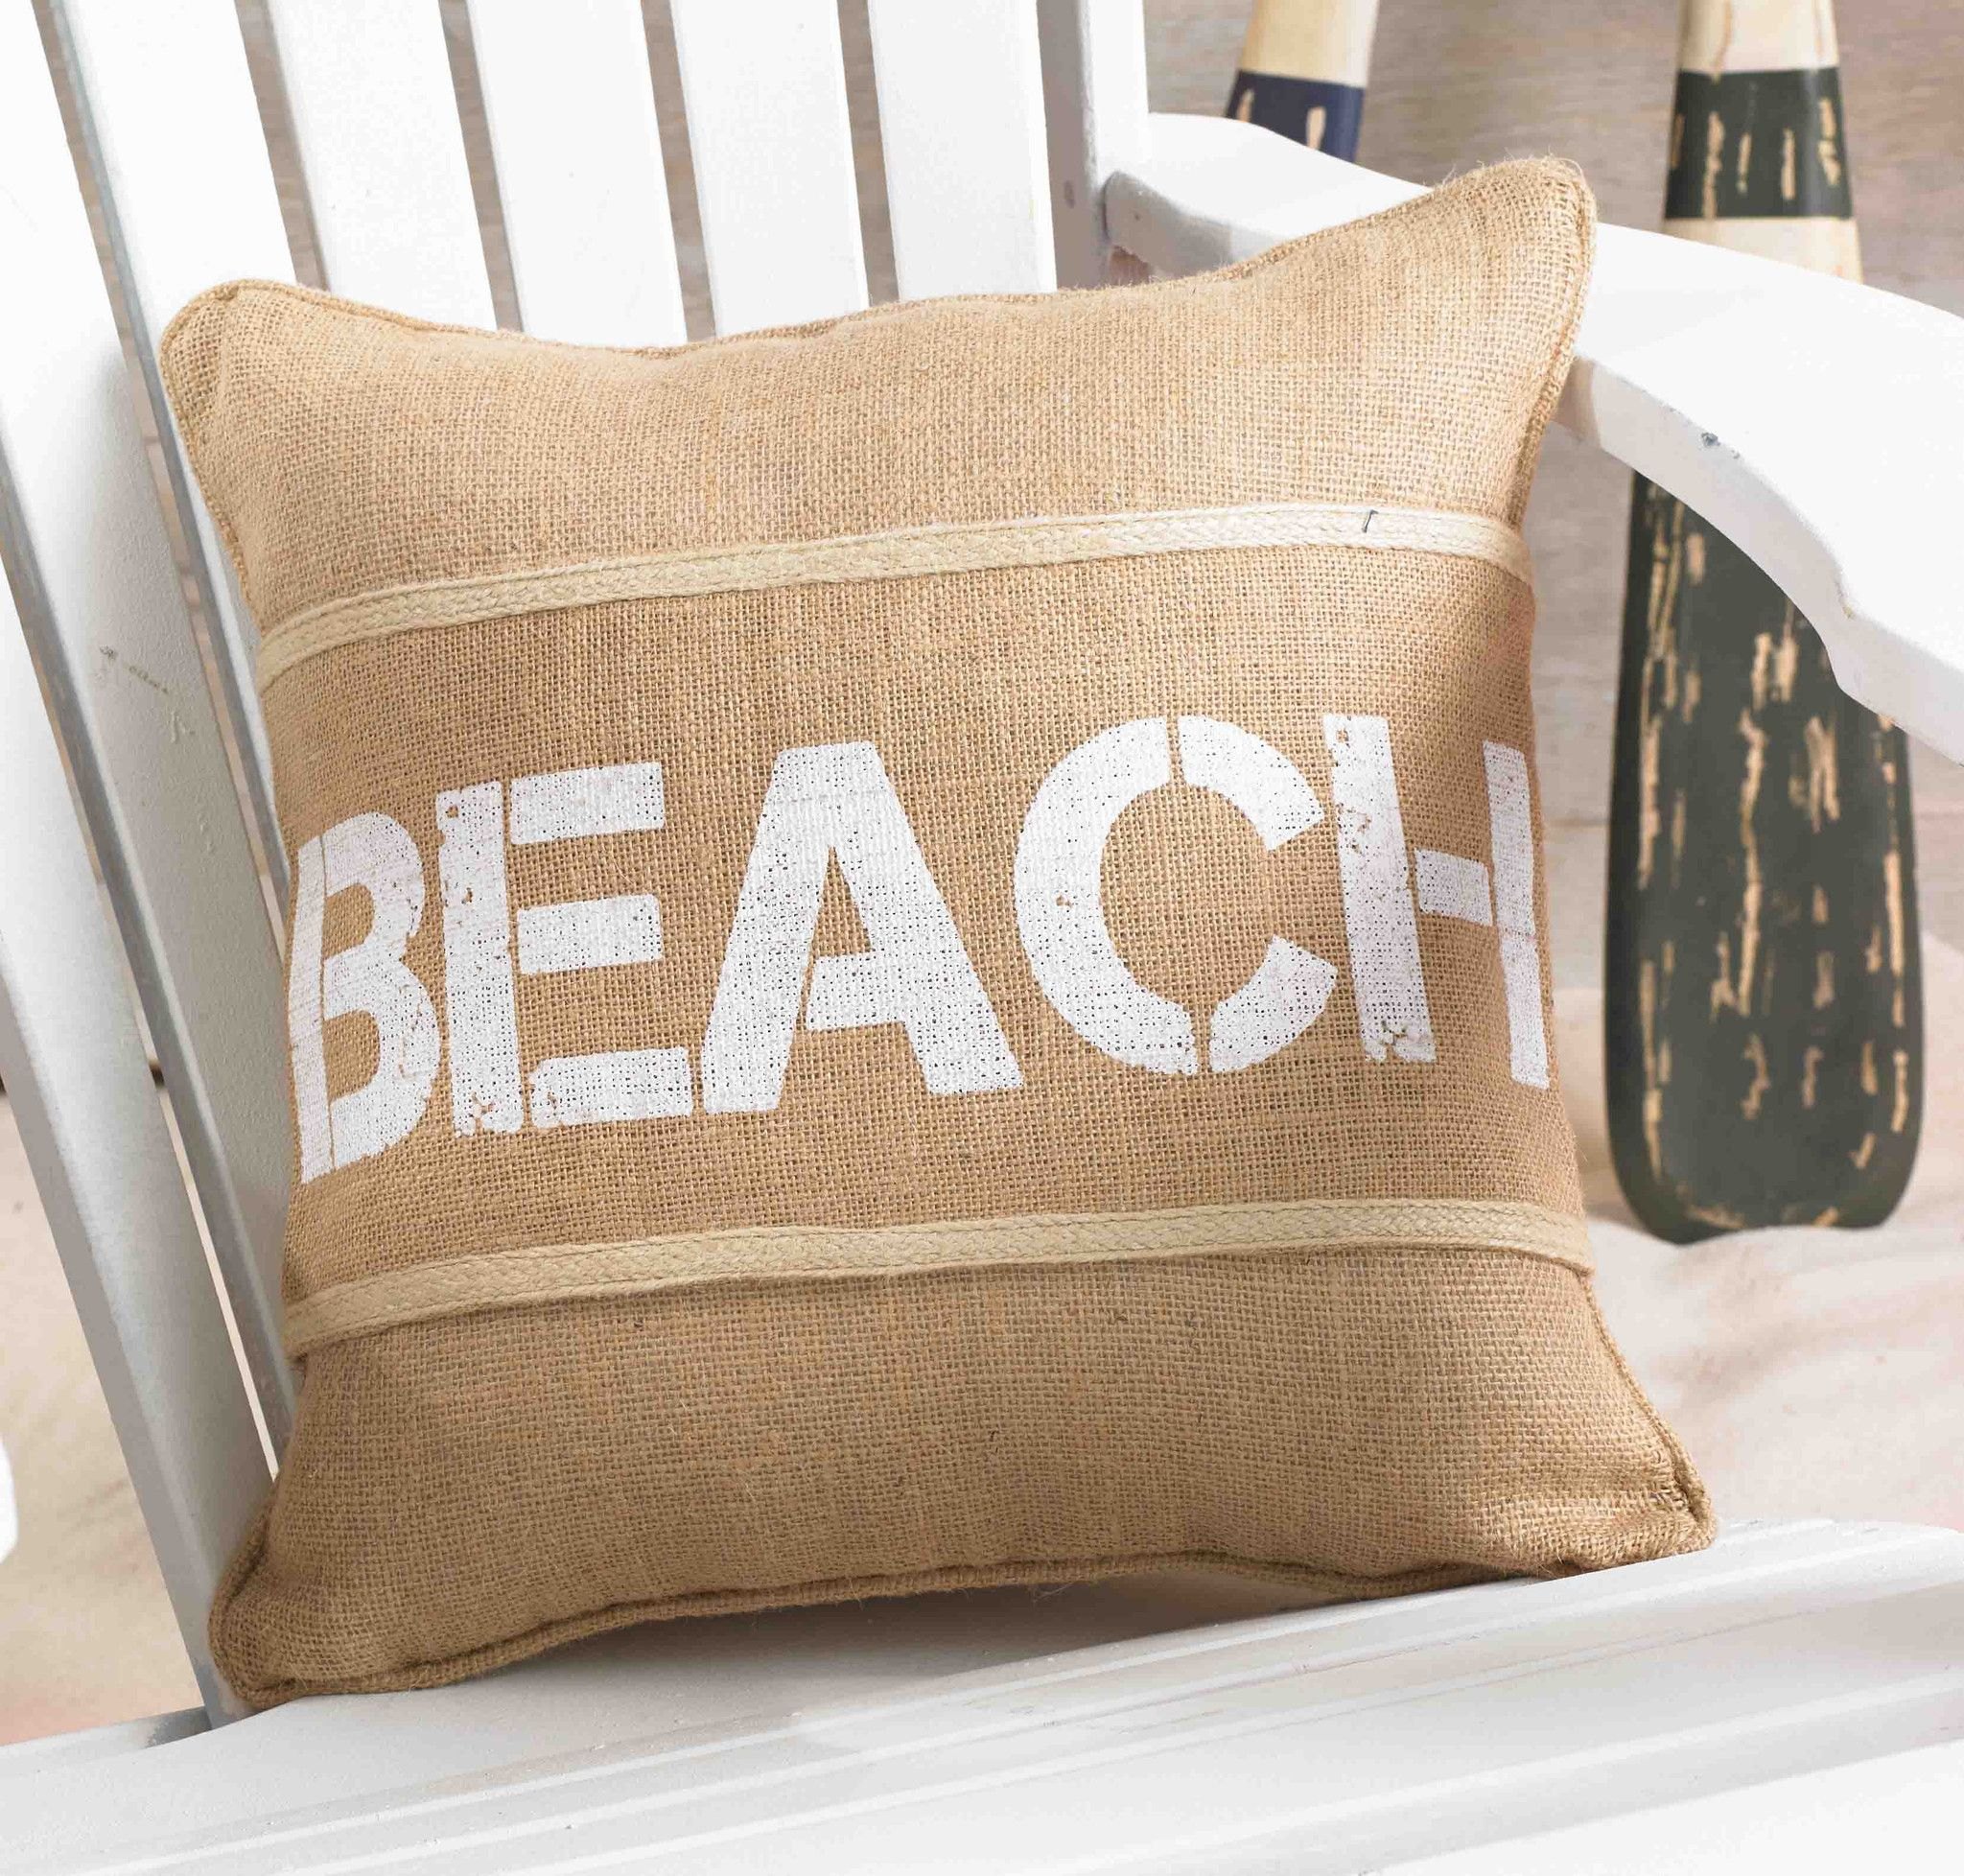 need covers all you beach the gallery craftionary is love pillows cushion pillow and blanket decorative homemade